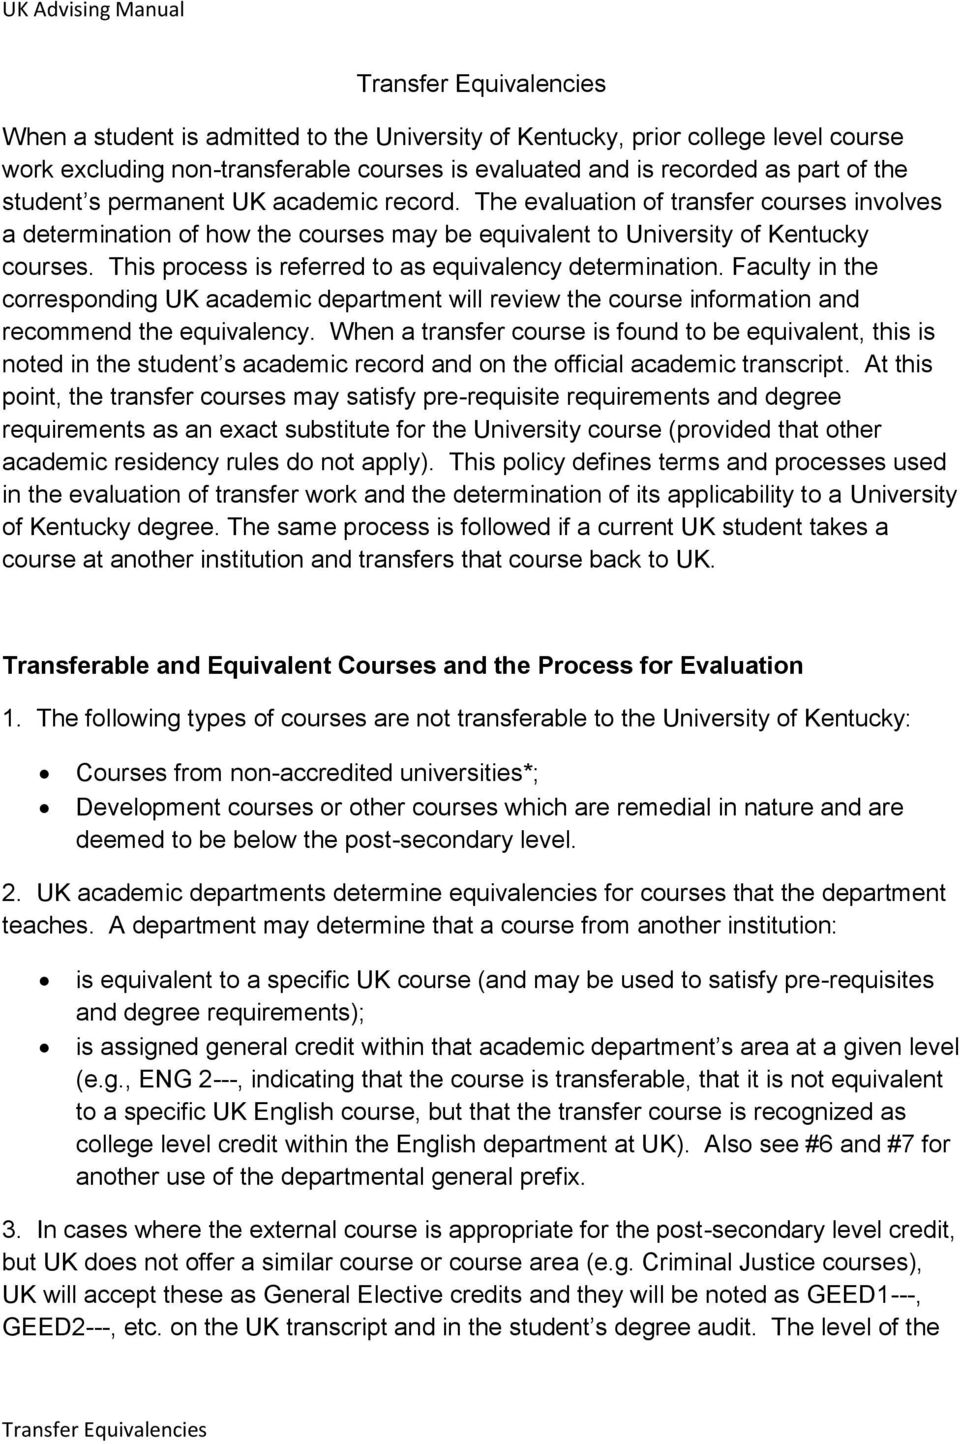 This process is referred to as equivalency determination. Faculty in the corresponding UK academic department will review the course information and recommend the equivalency.